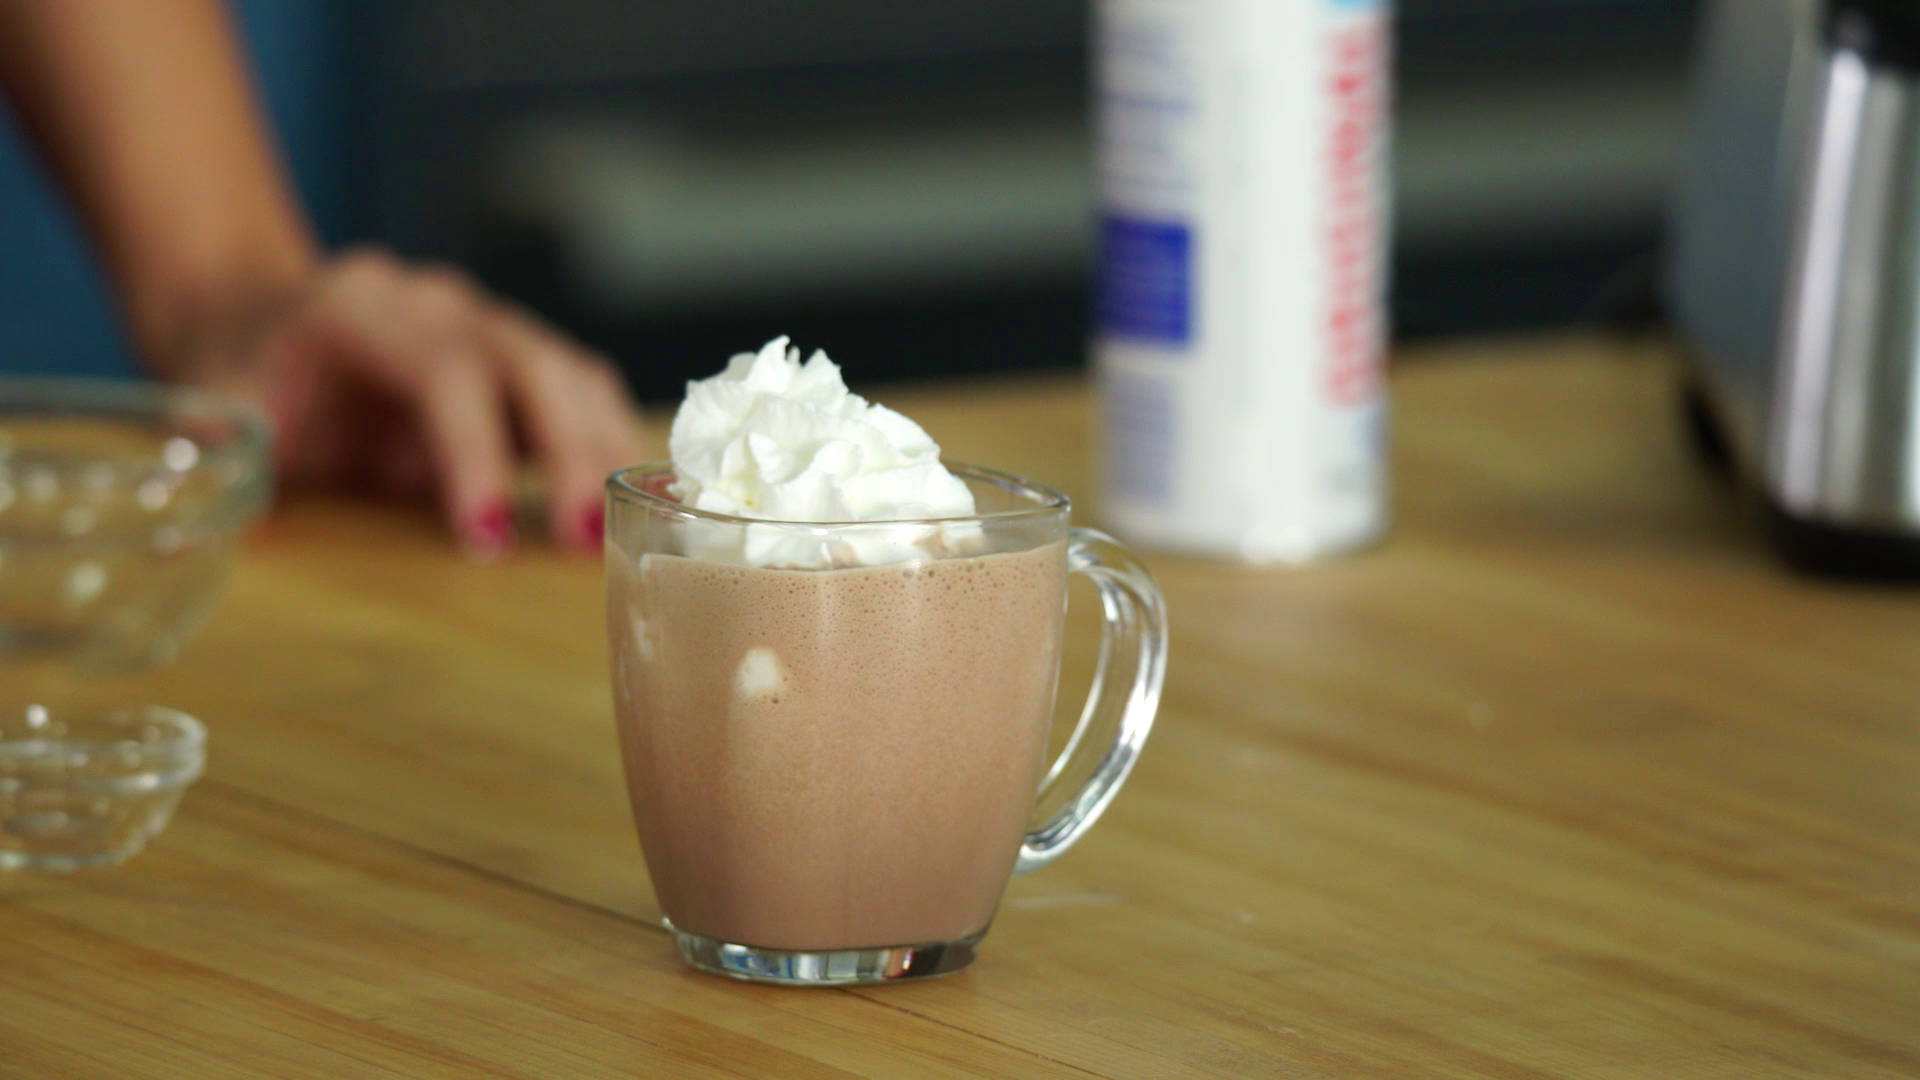 Blending 101 Hot Chocolate